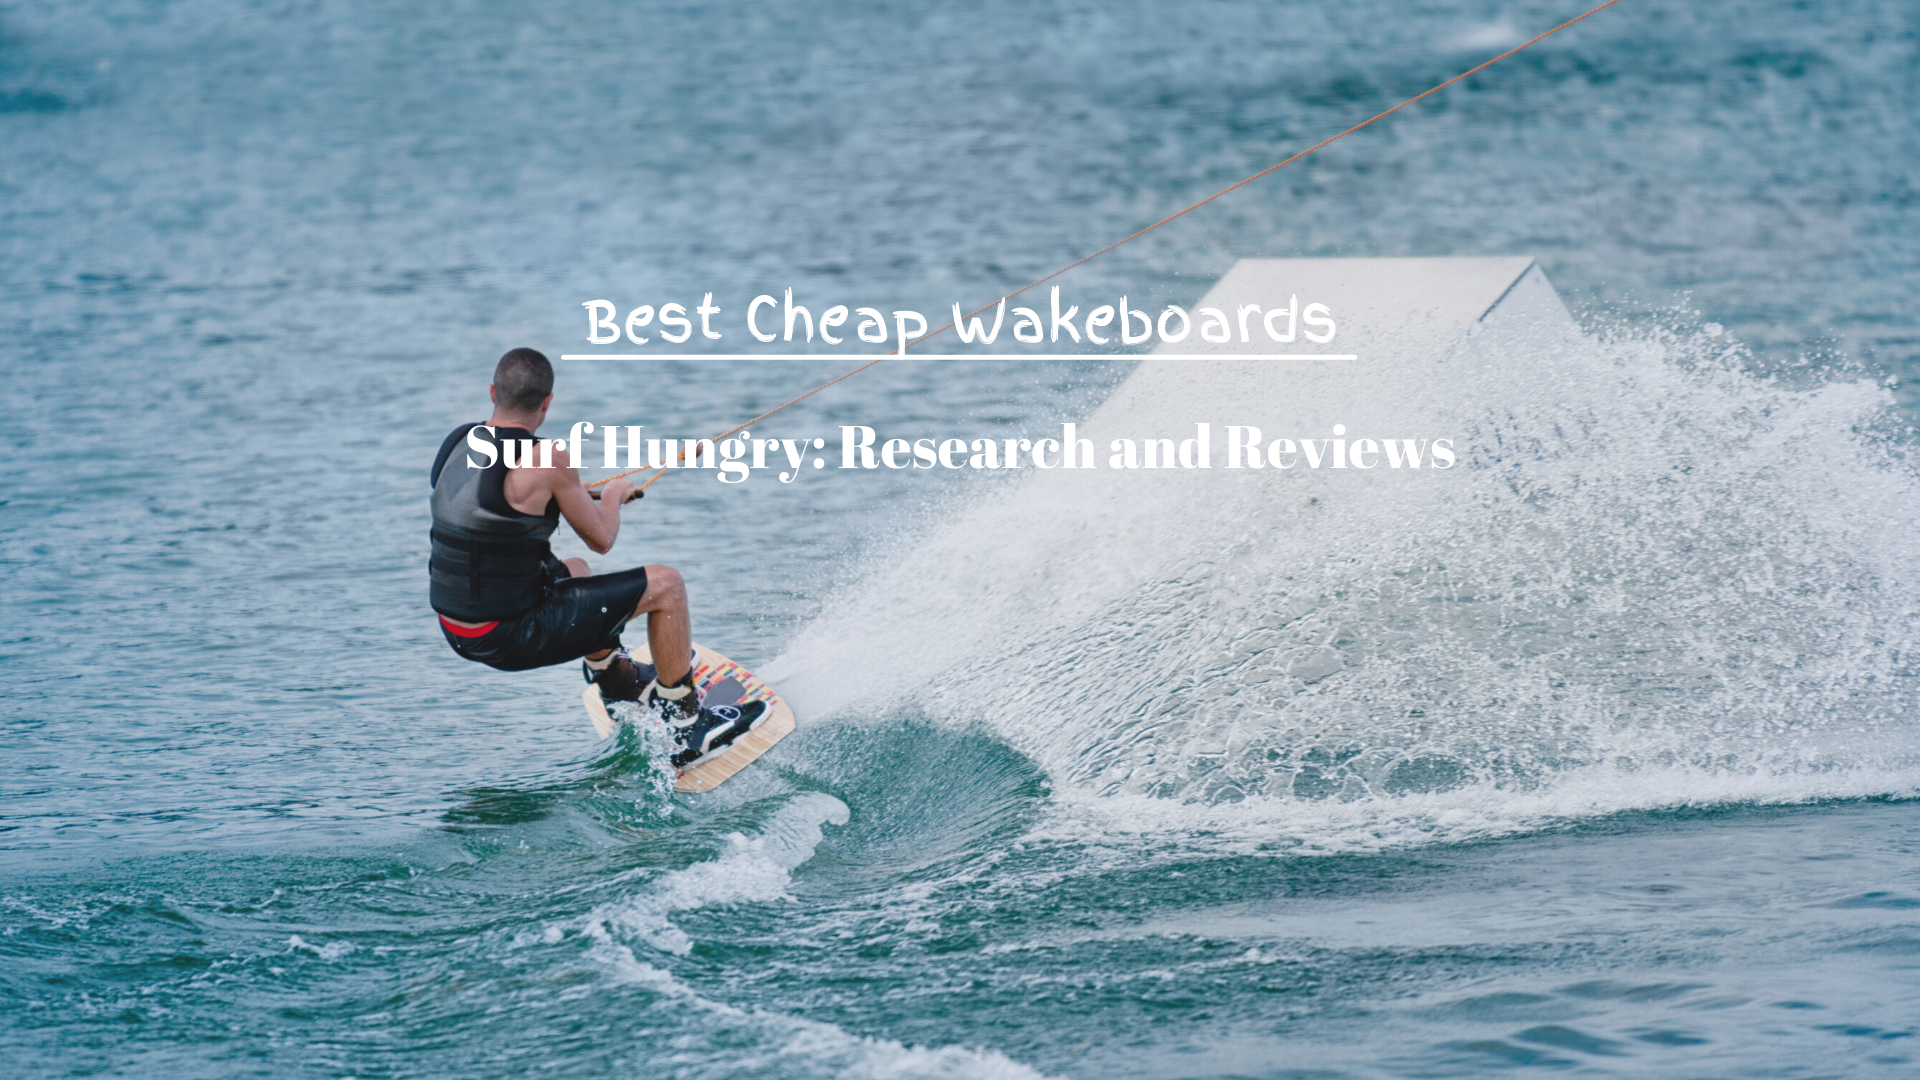 Best Cheap Wakeboards